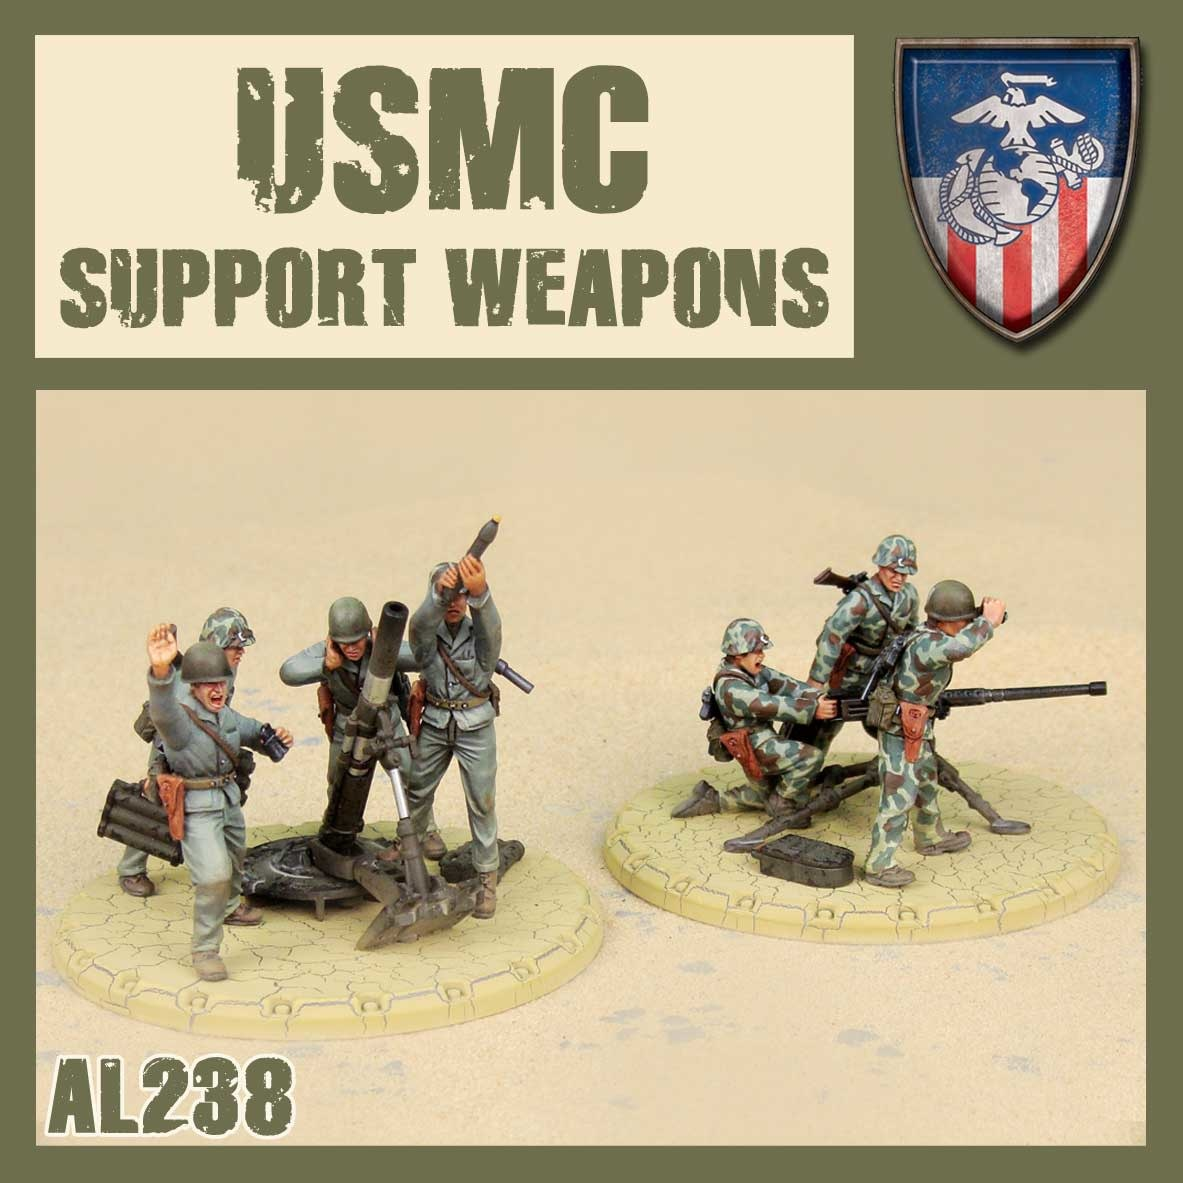 DUST USA DUST DROP-SHIP: USMC Support Weapons